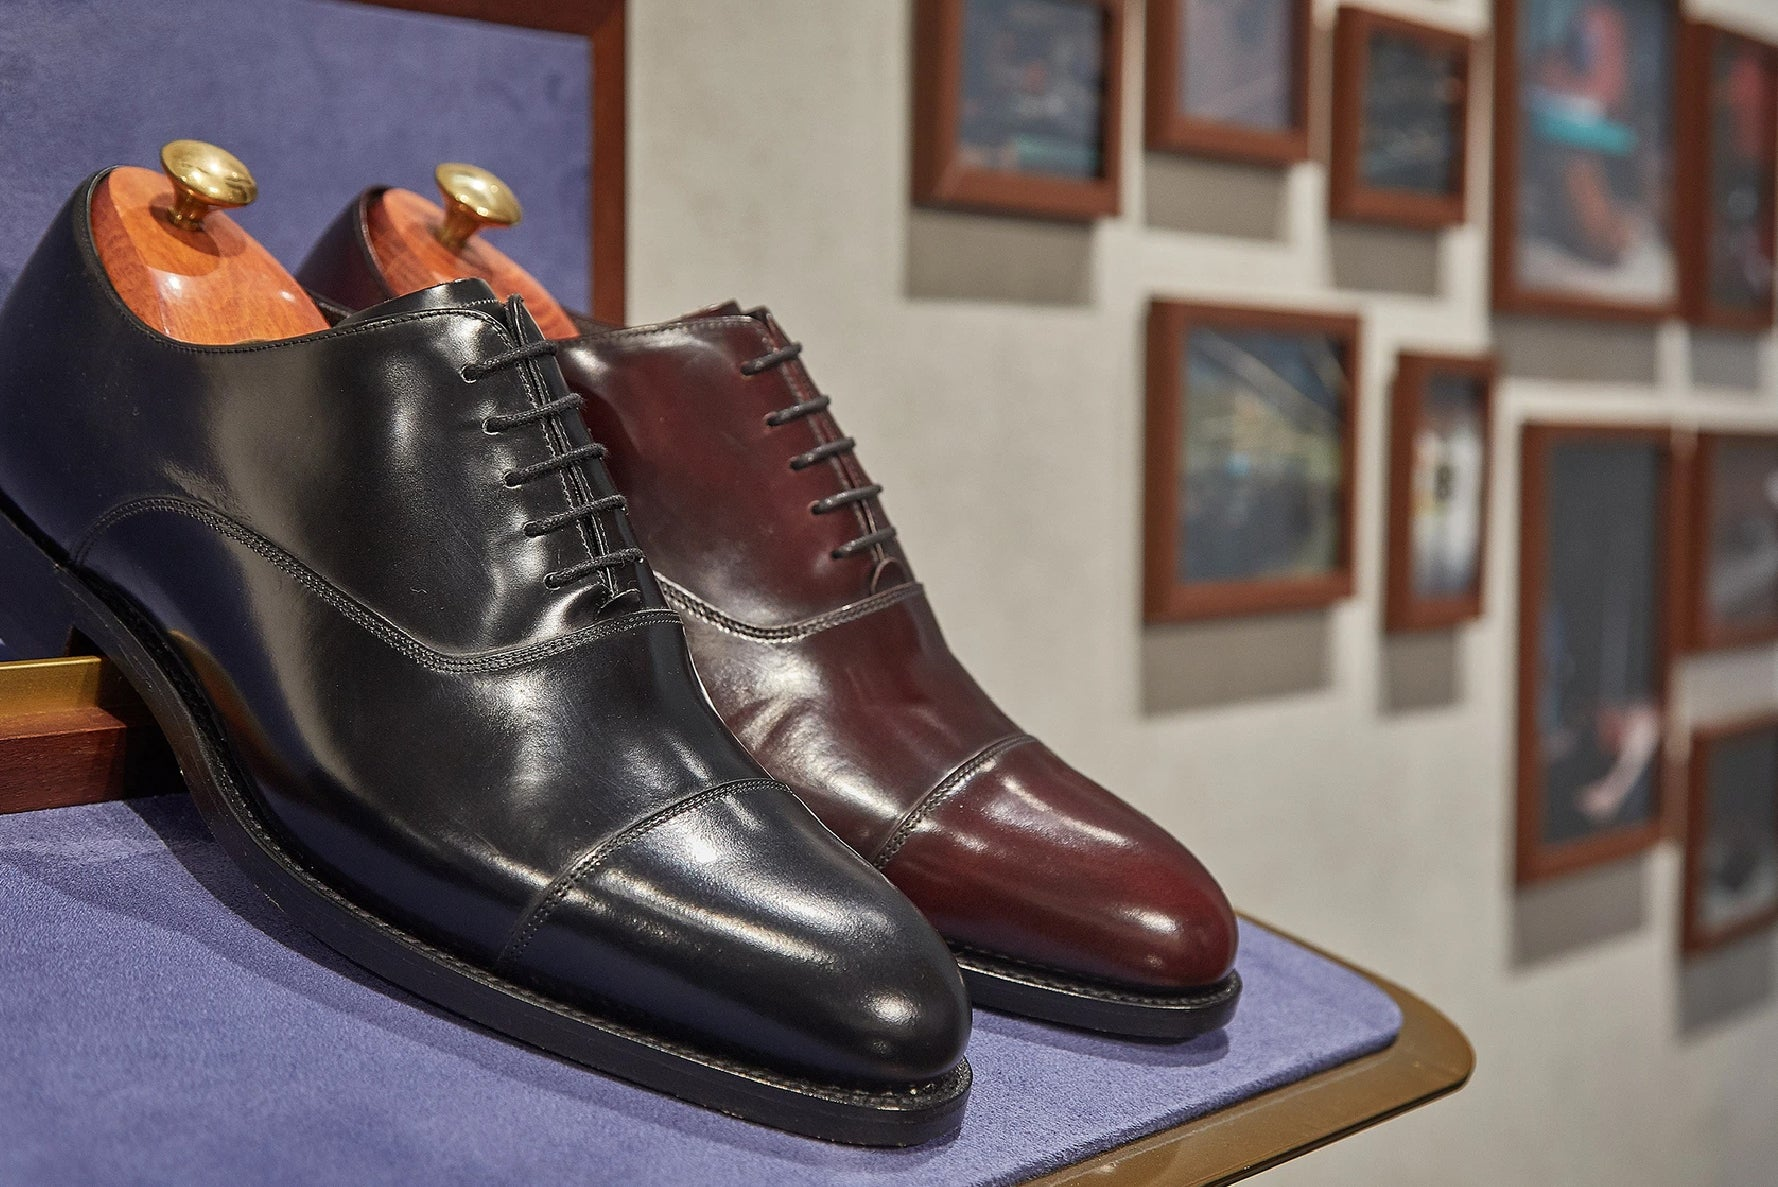 Black and Brown Oxford Shoes By Barker